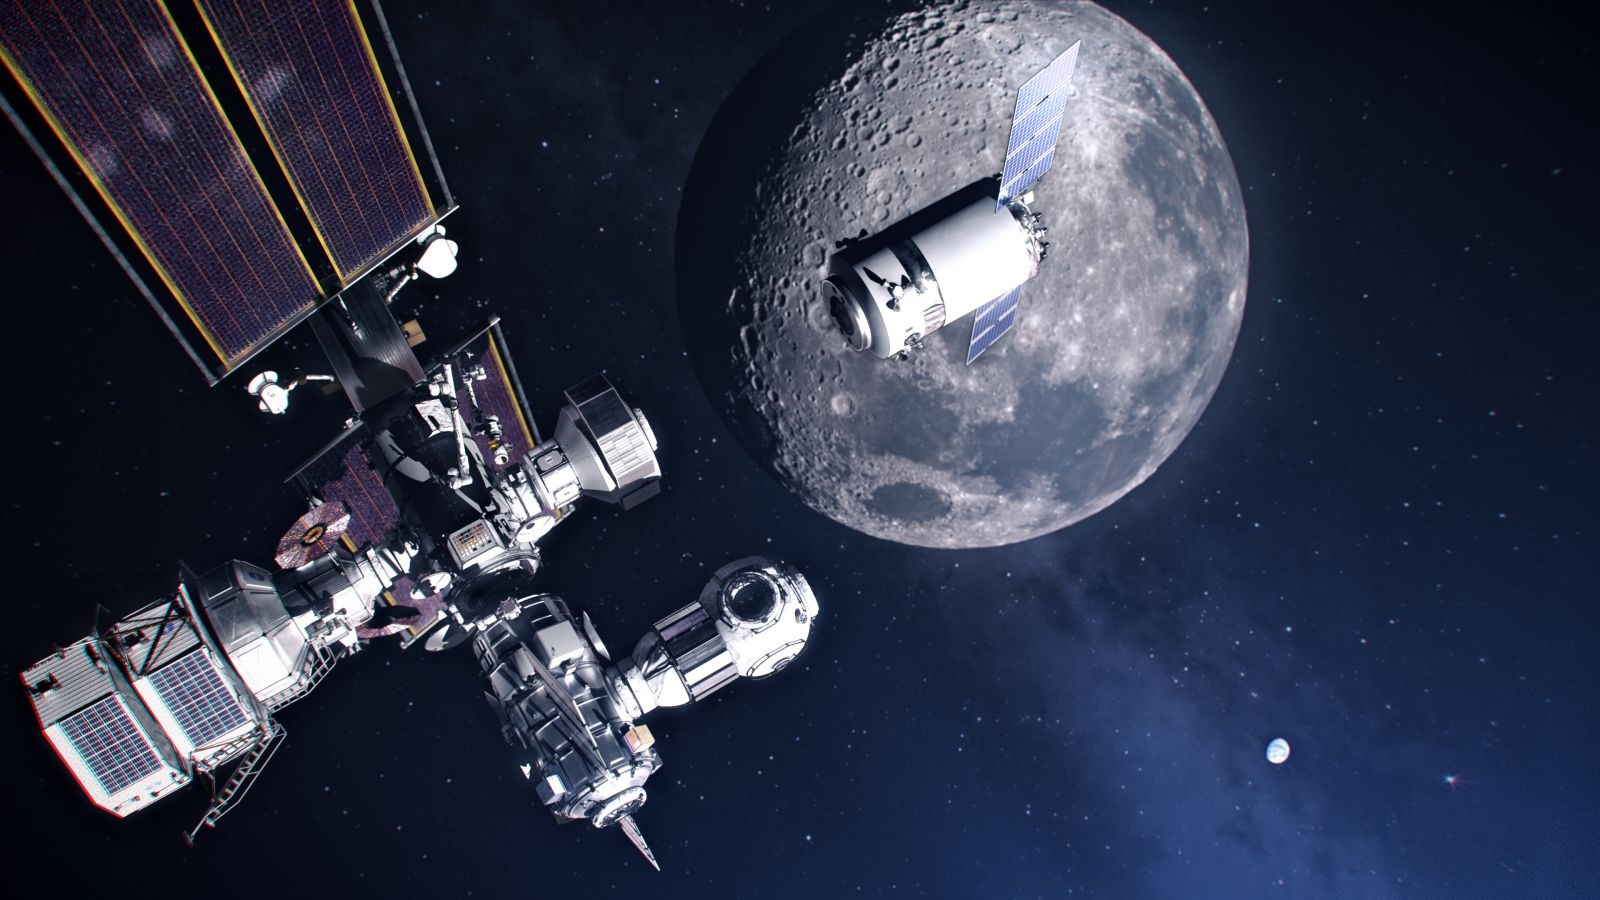 An illustration of a Dragon XL spacecraft approaching an evolved Lunar Gateway outpost around the Moon. Credit: NASA